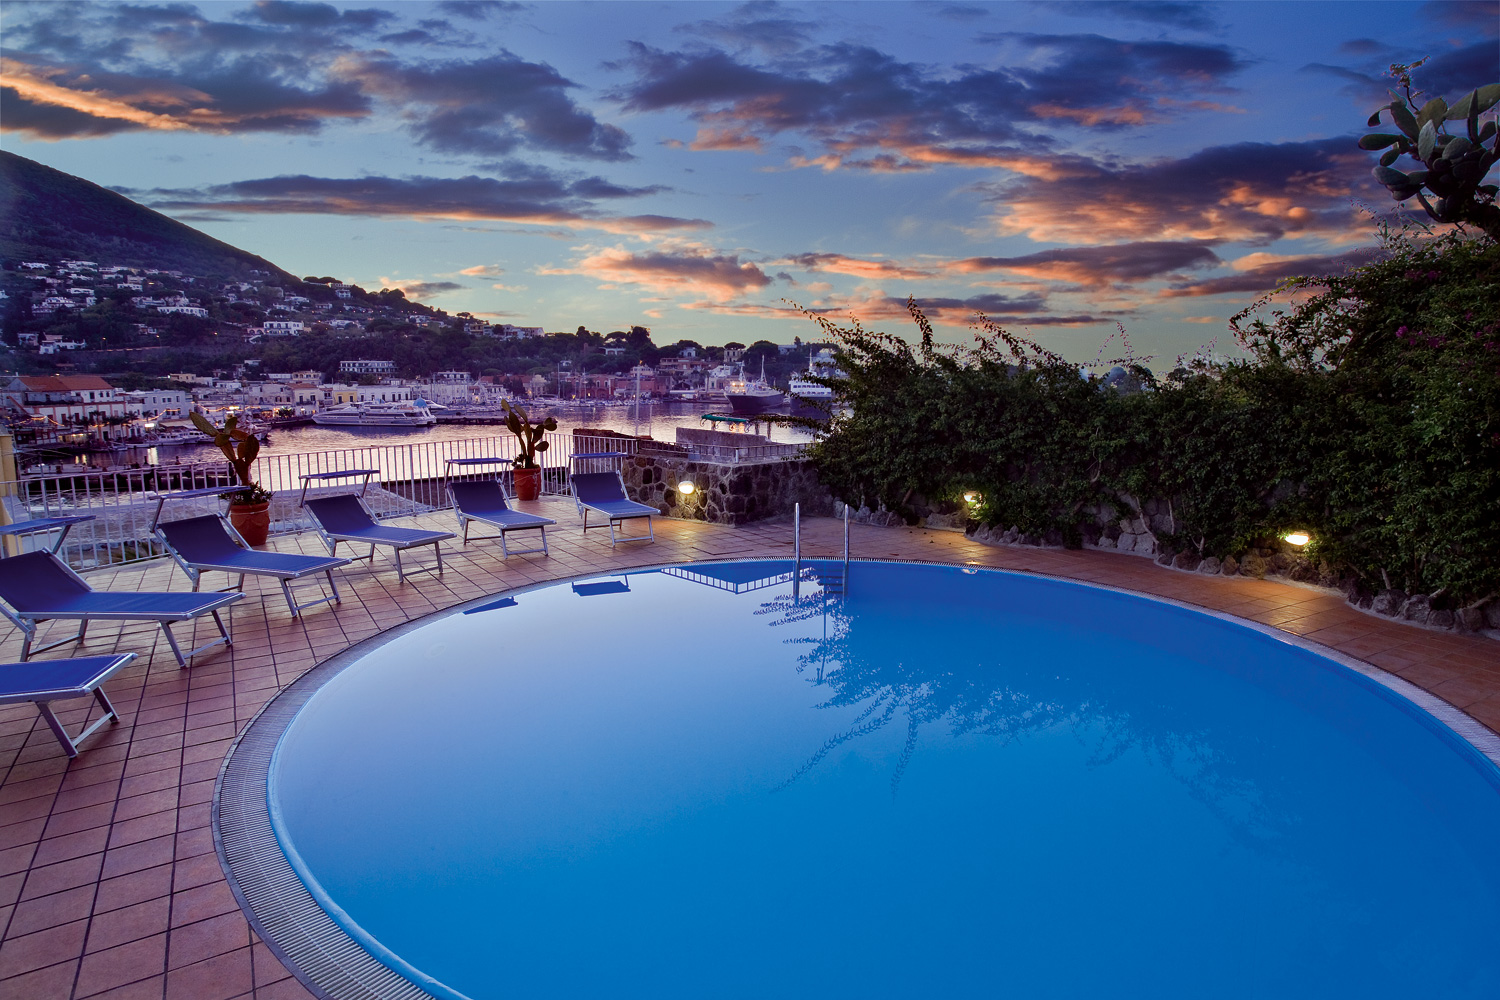 Albergo Terme Italia Hotel Ischia 4 Stars Spa Wellness Center Ischia Offers Hotel Spa